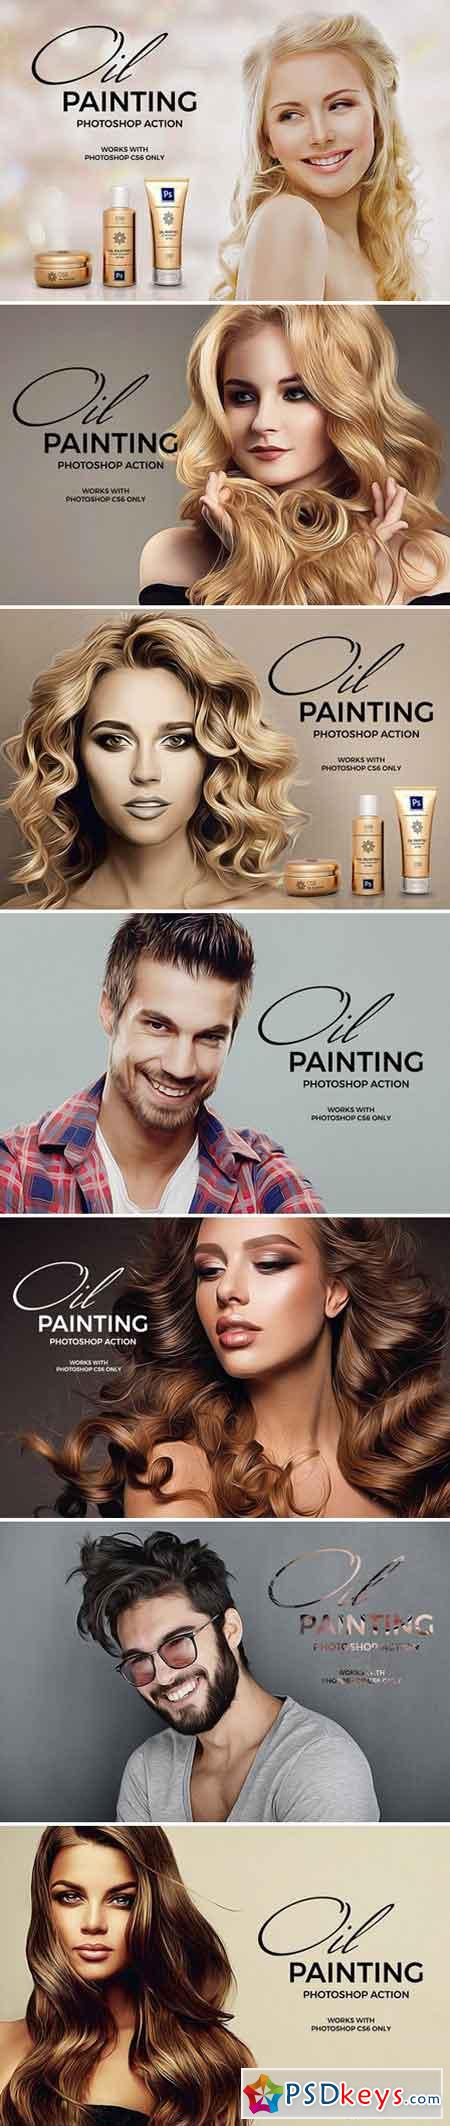 Oil Painting Photoshop Action 2231723